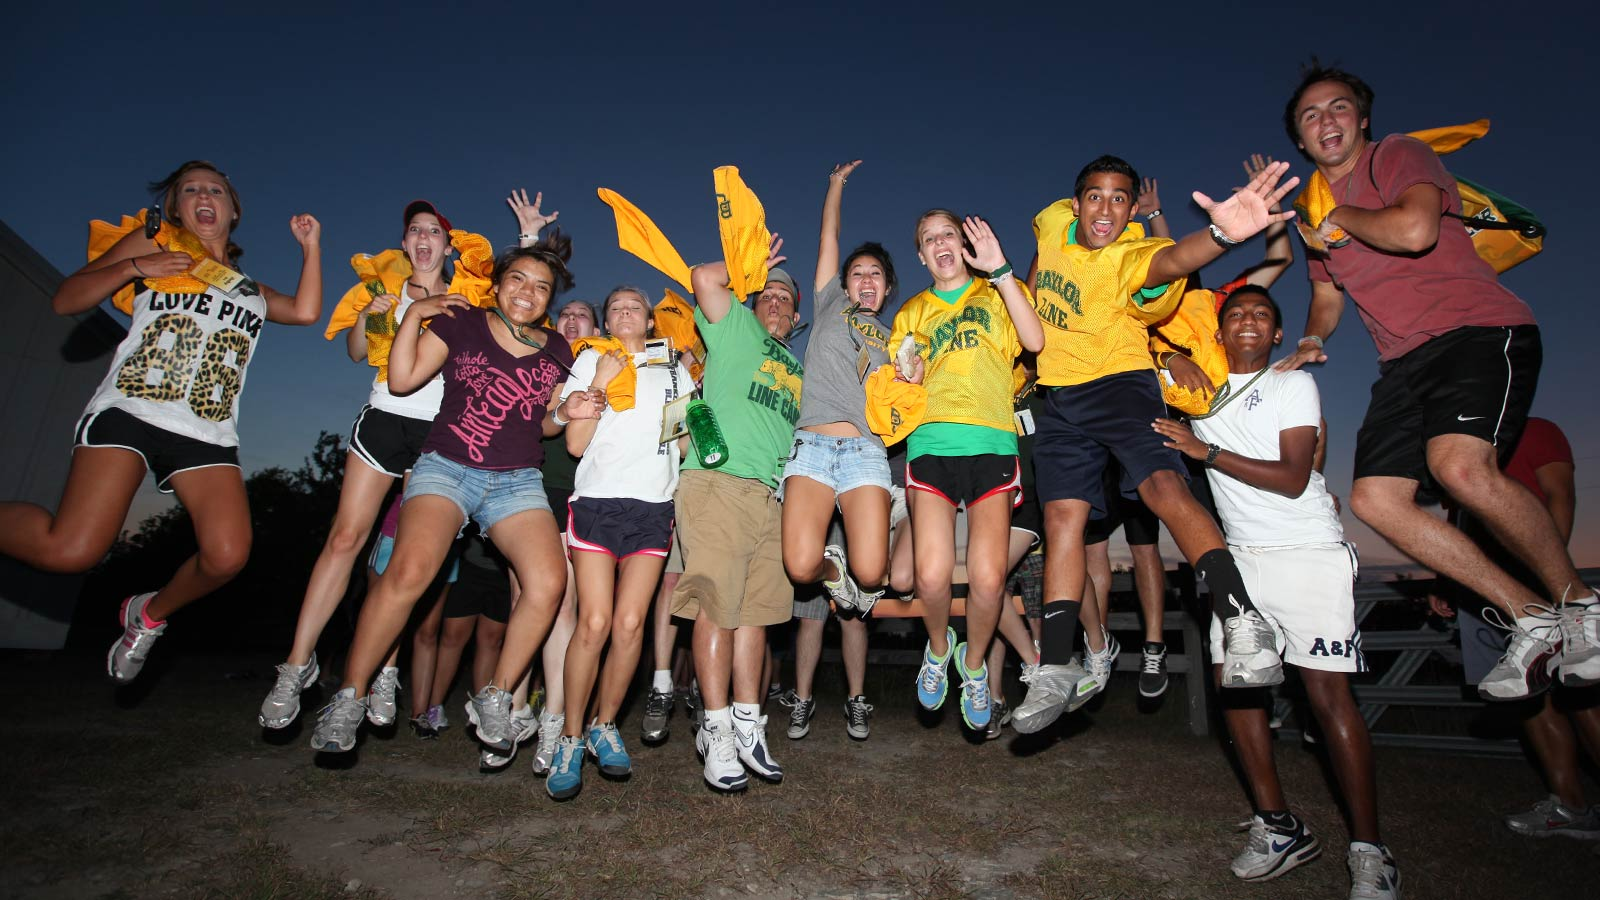 Baylor Line Camp provides incoming students their first high-energy experience and introduction to traditions.